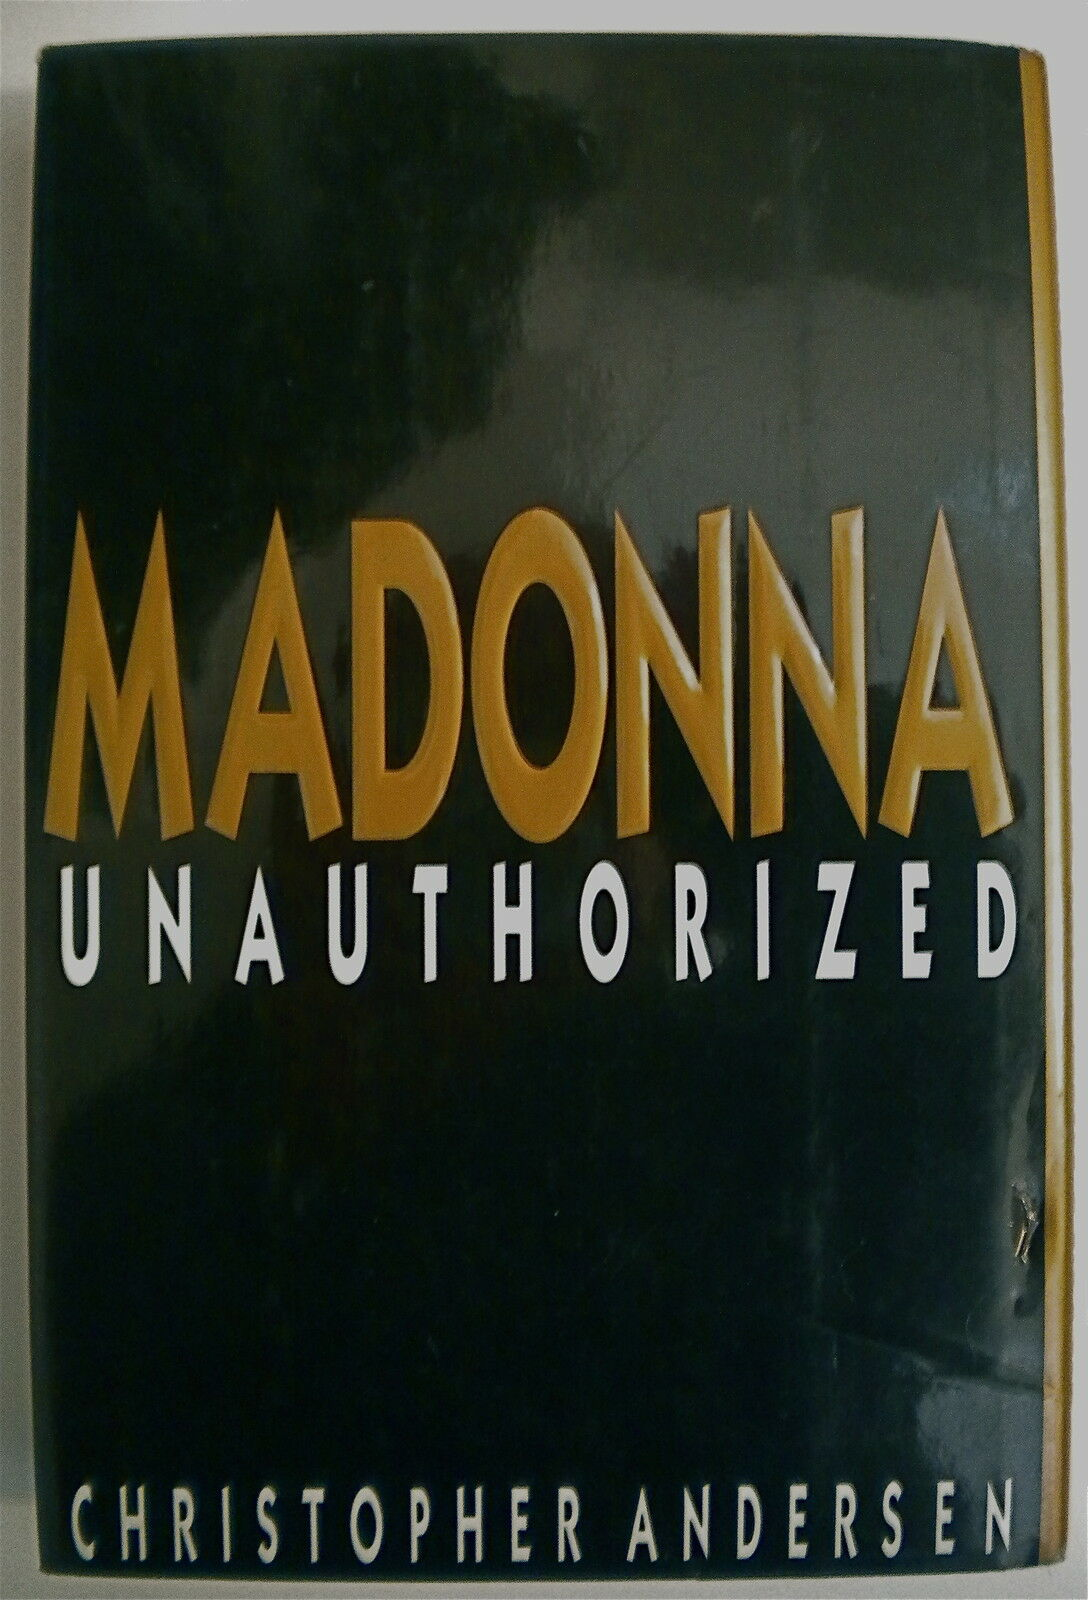 MADONNA UNAUTHORIZED by Christopher Anderson (1991) Hard Cover Book 1st Edition |